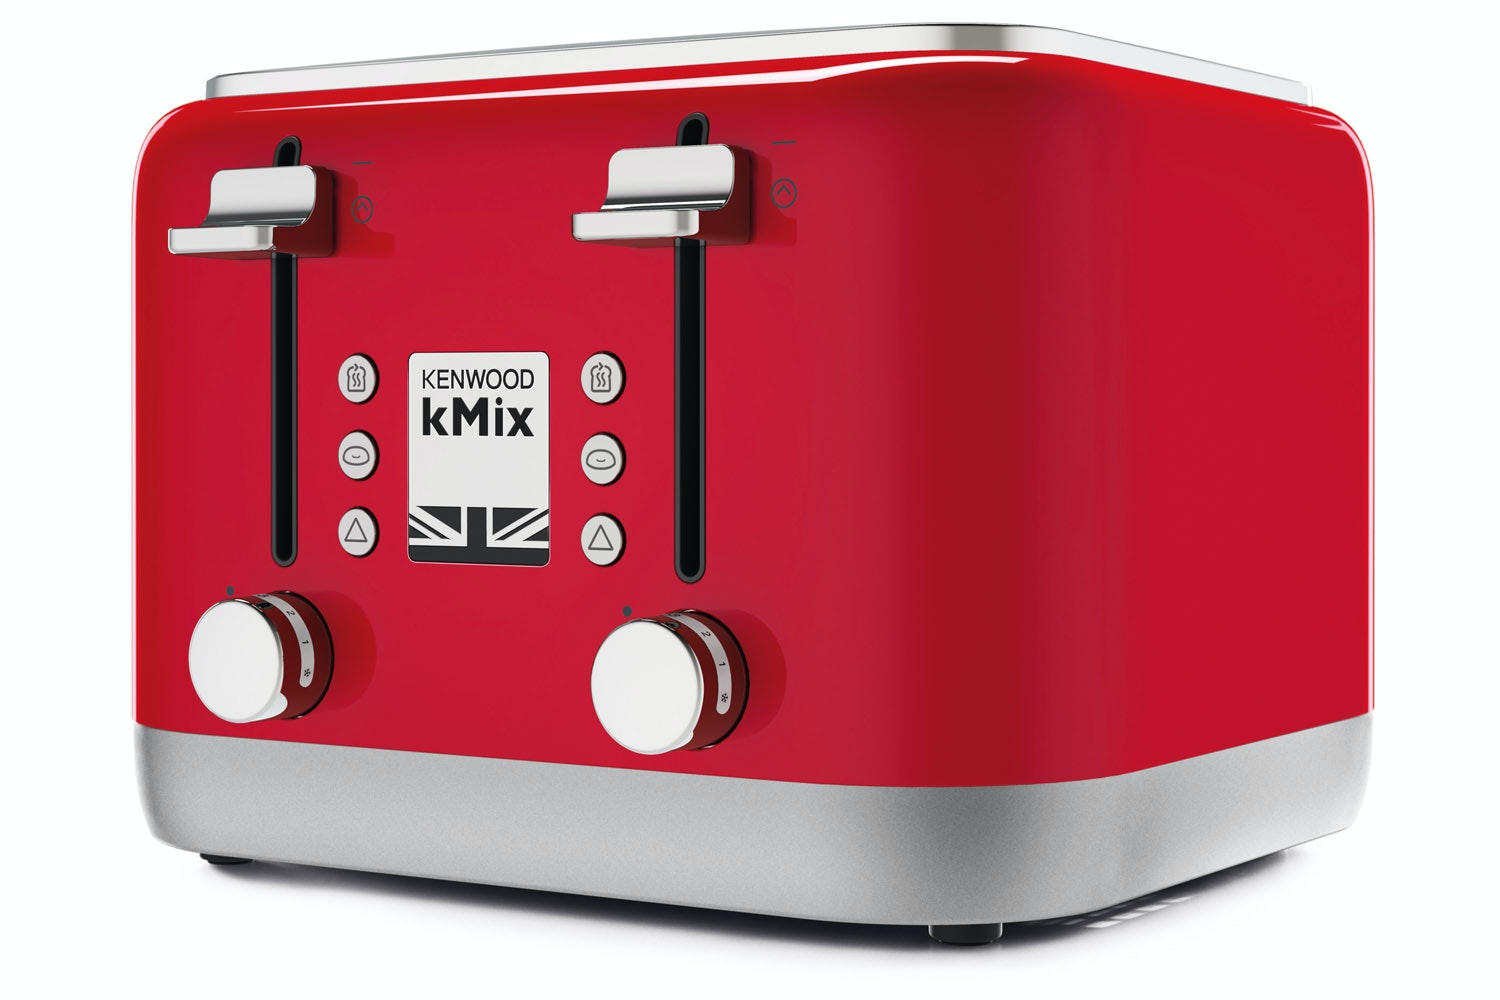 Kenwood kMix 4 Slice Toaster | Red